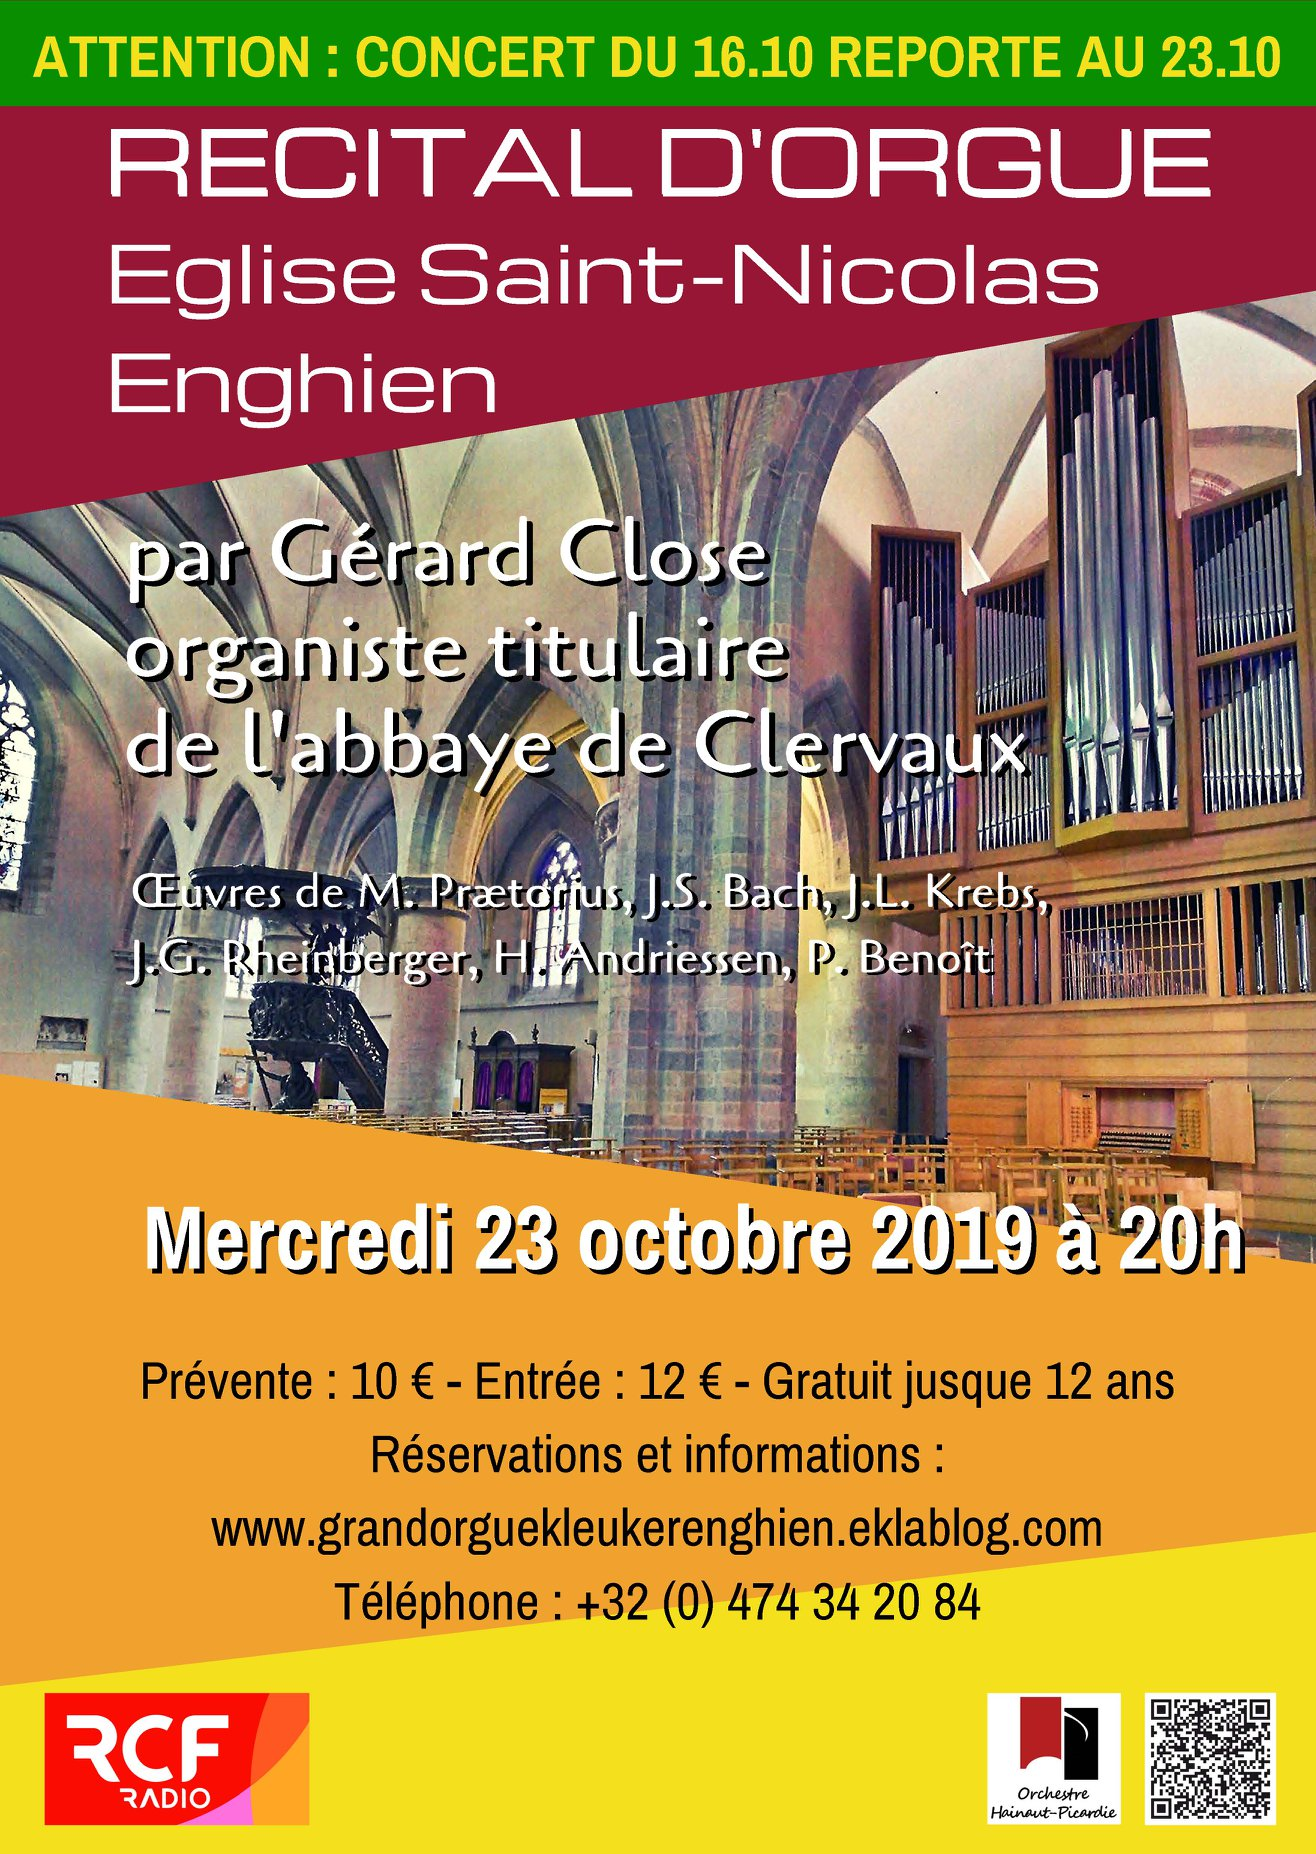 concert close enghien